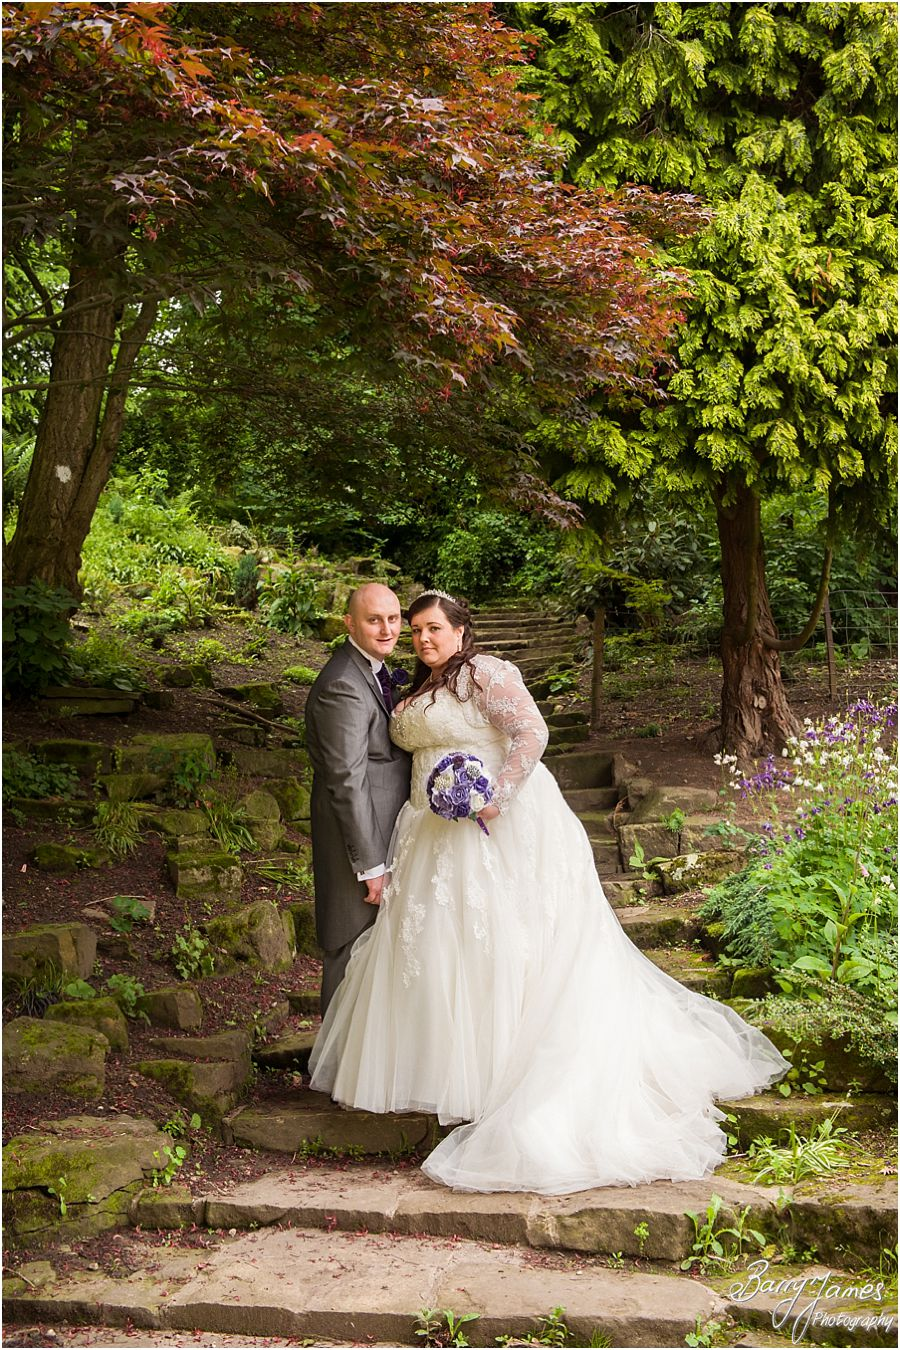 Modern stunning wedding photography in Walsall Arboretum in Walsall by Contemporary and Creative Wedding Photographer Barry James